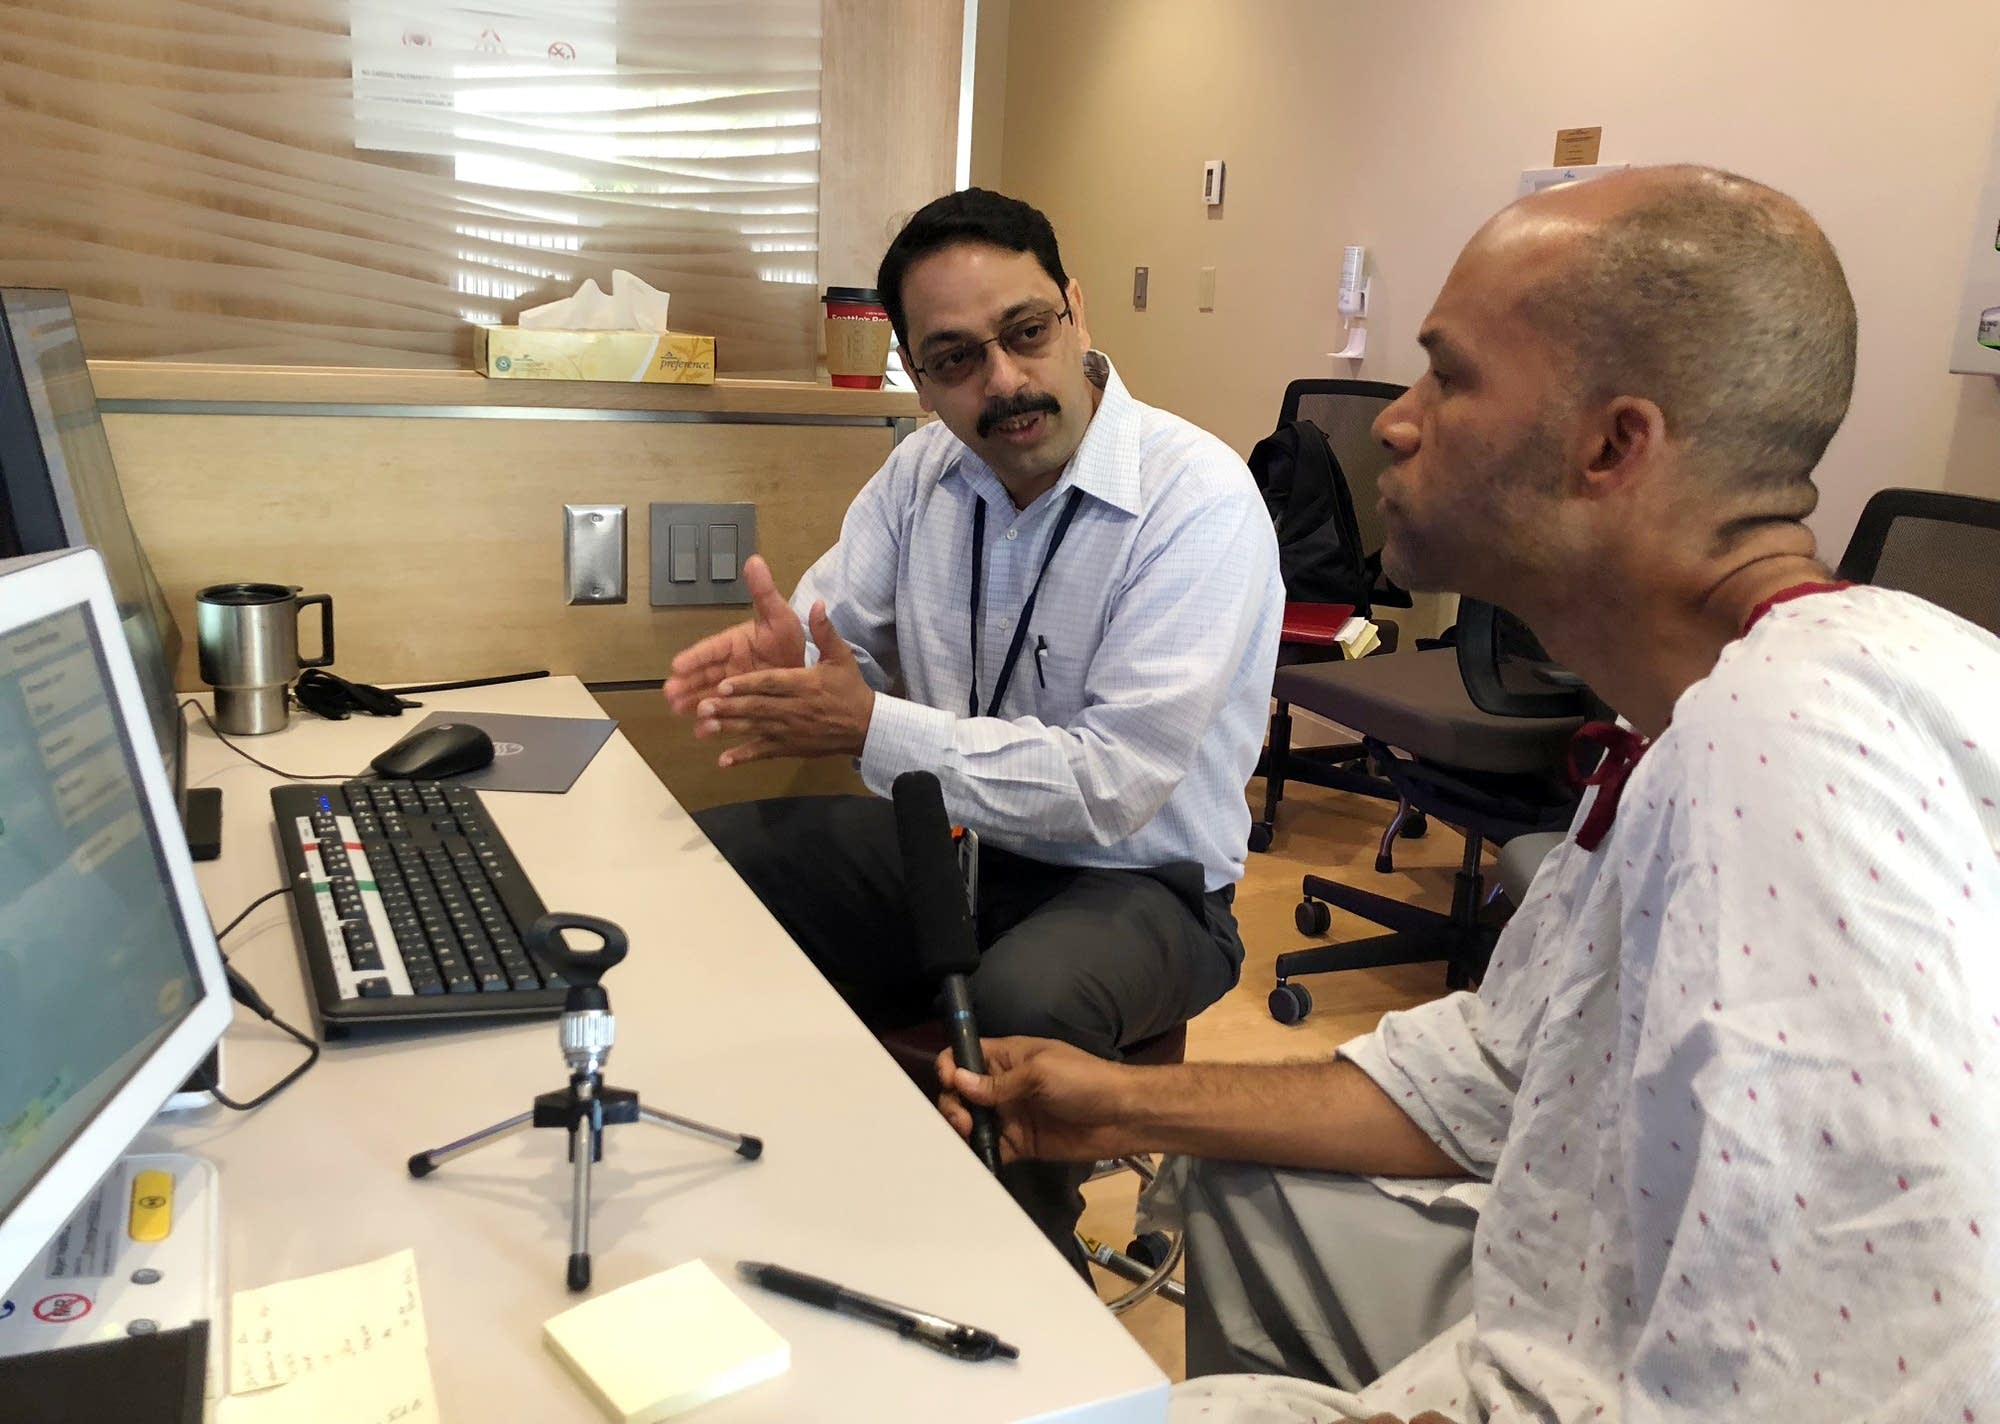 Dr. Gopal Punjabi talks with Brandt Williams about the result of the MRI.